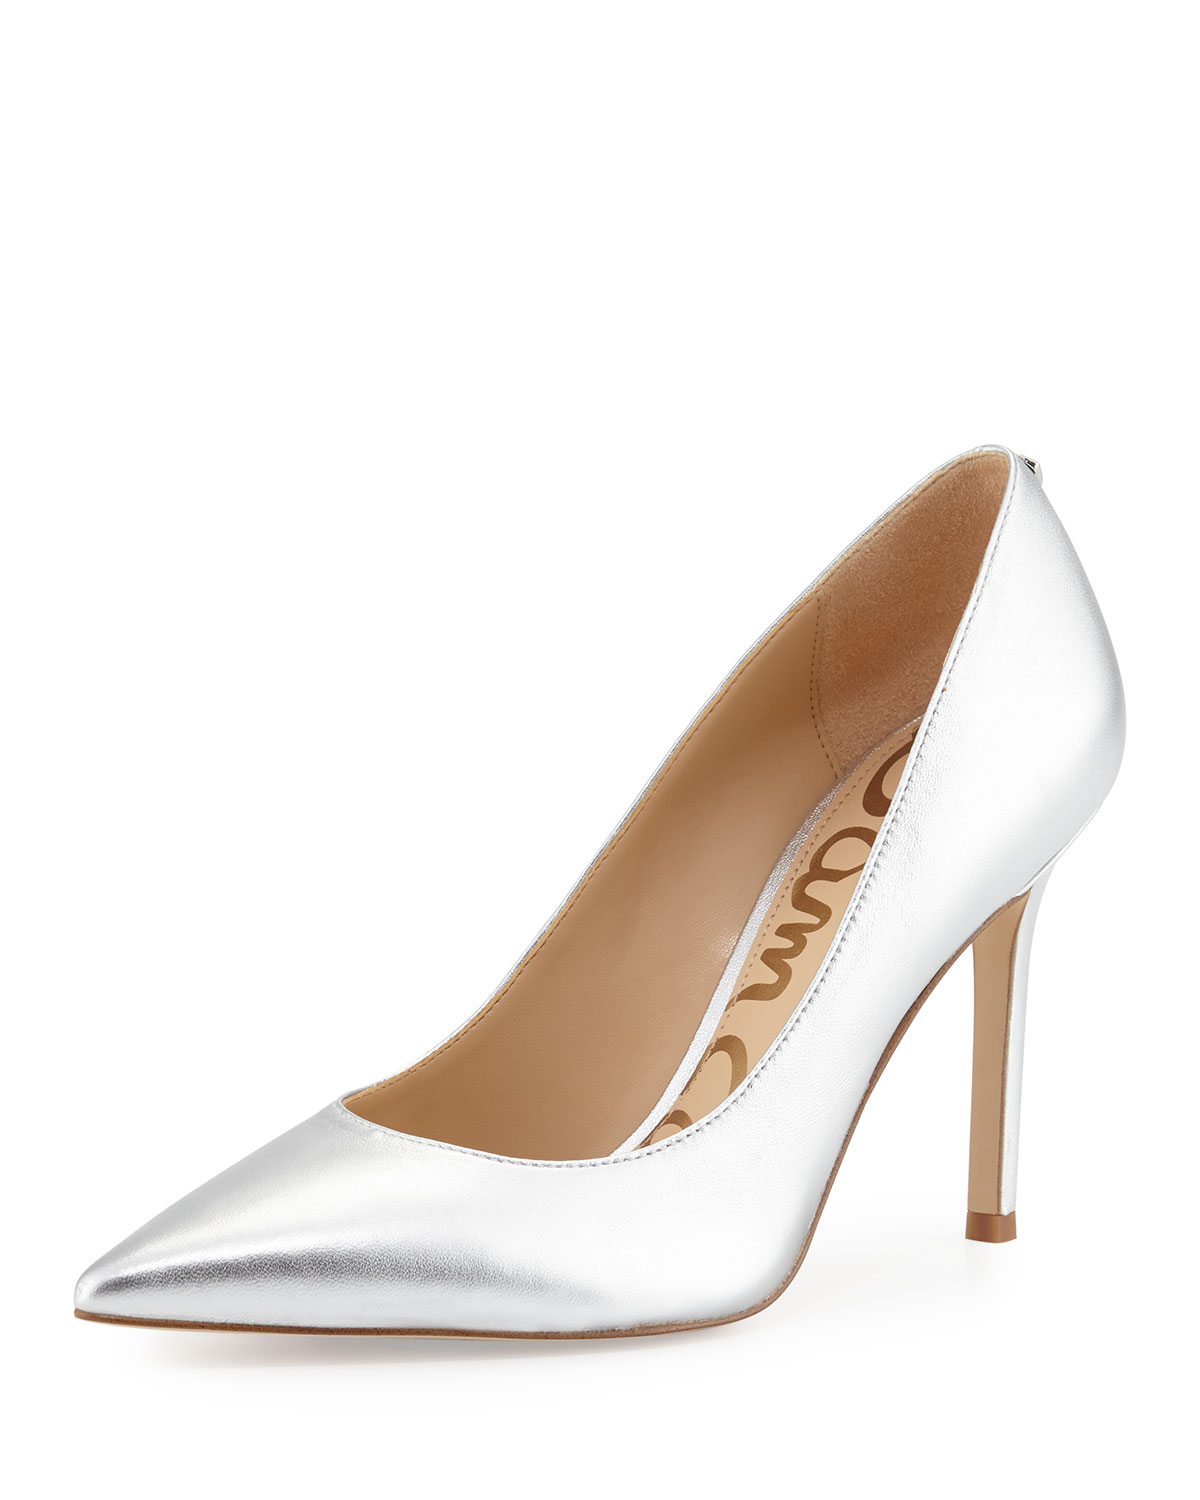 be300b604f2e Sam Edelman Hazel Pointed-Toe Metallic Pump